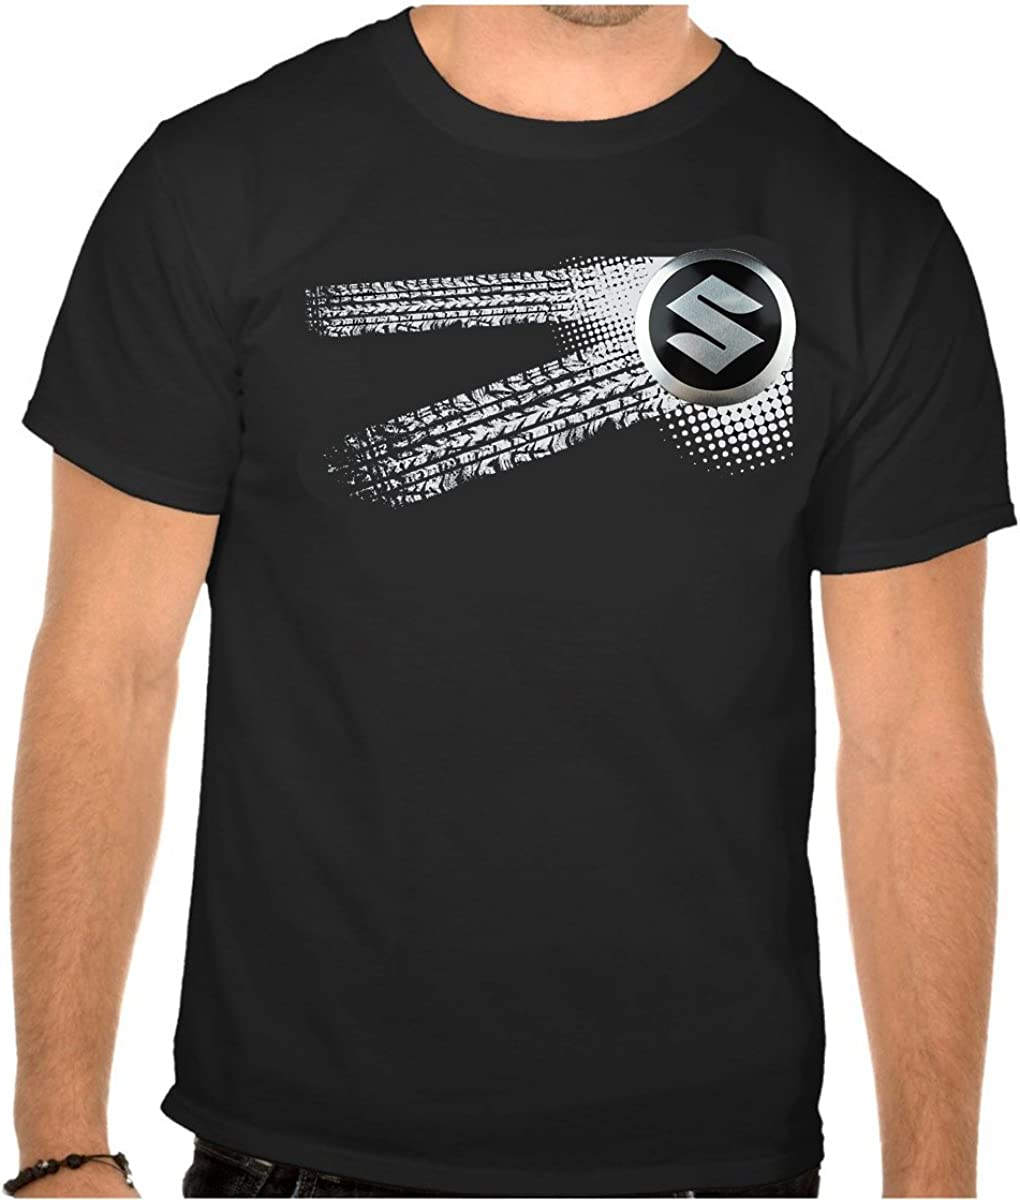 mmshop18 Suzuki Auto Logo Car Noir T-Shirt 618